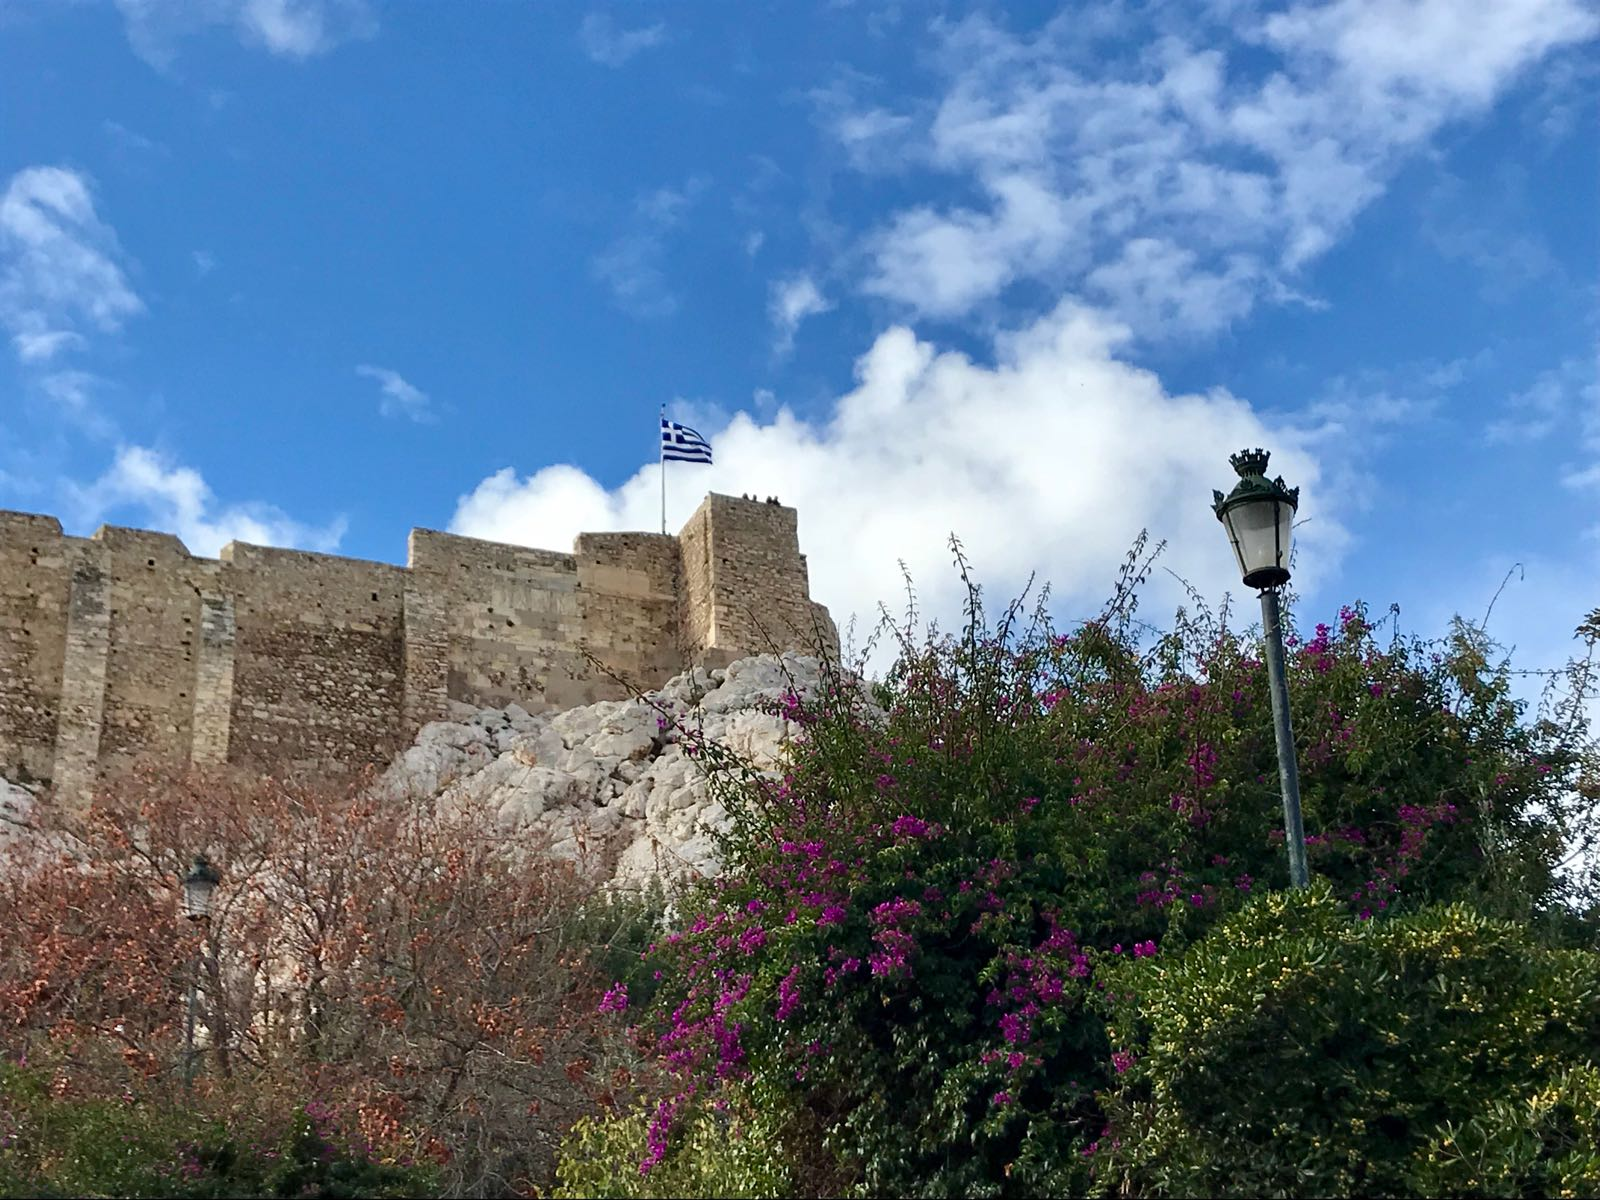 View of the Acropolis from below with the Greek flag flying